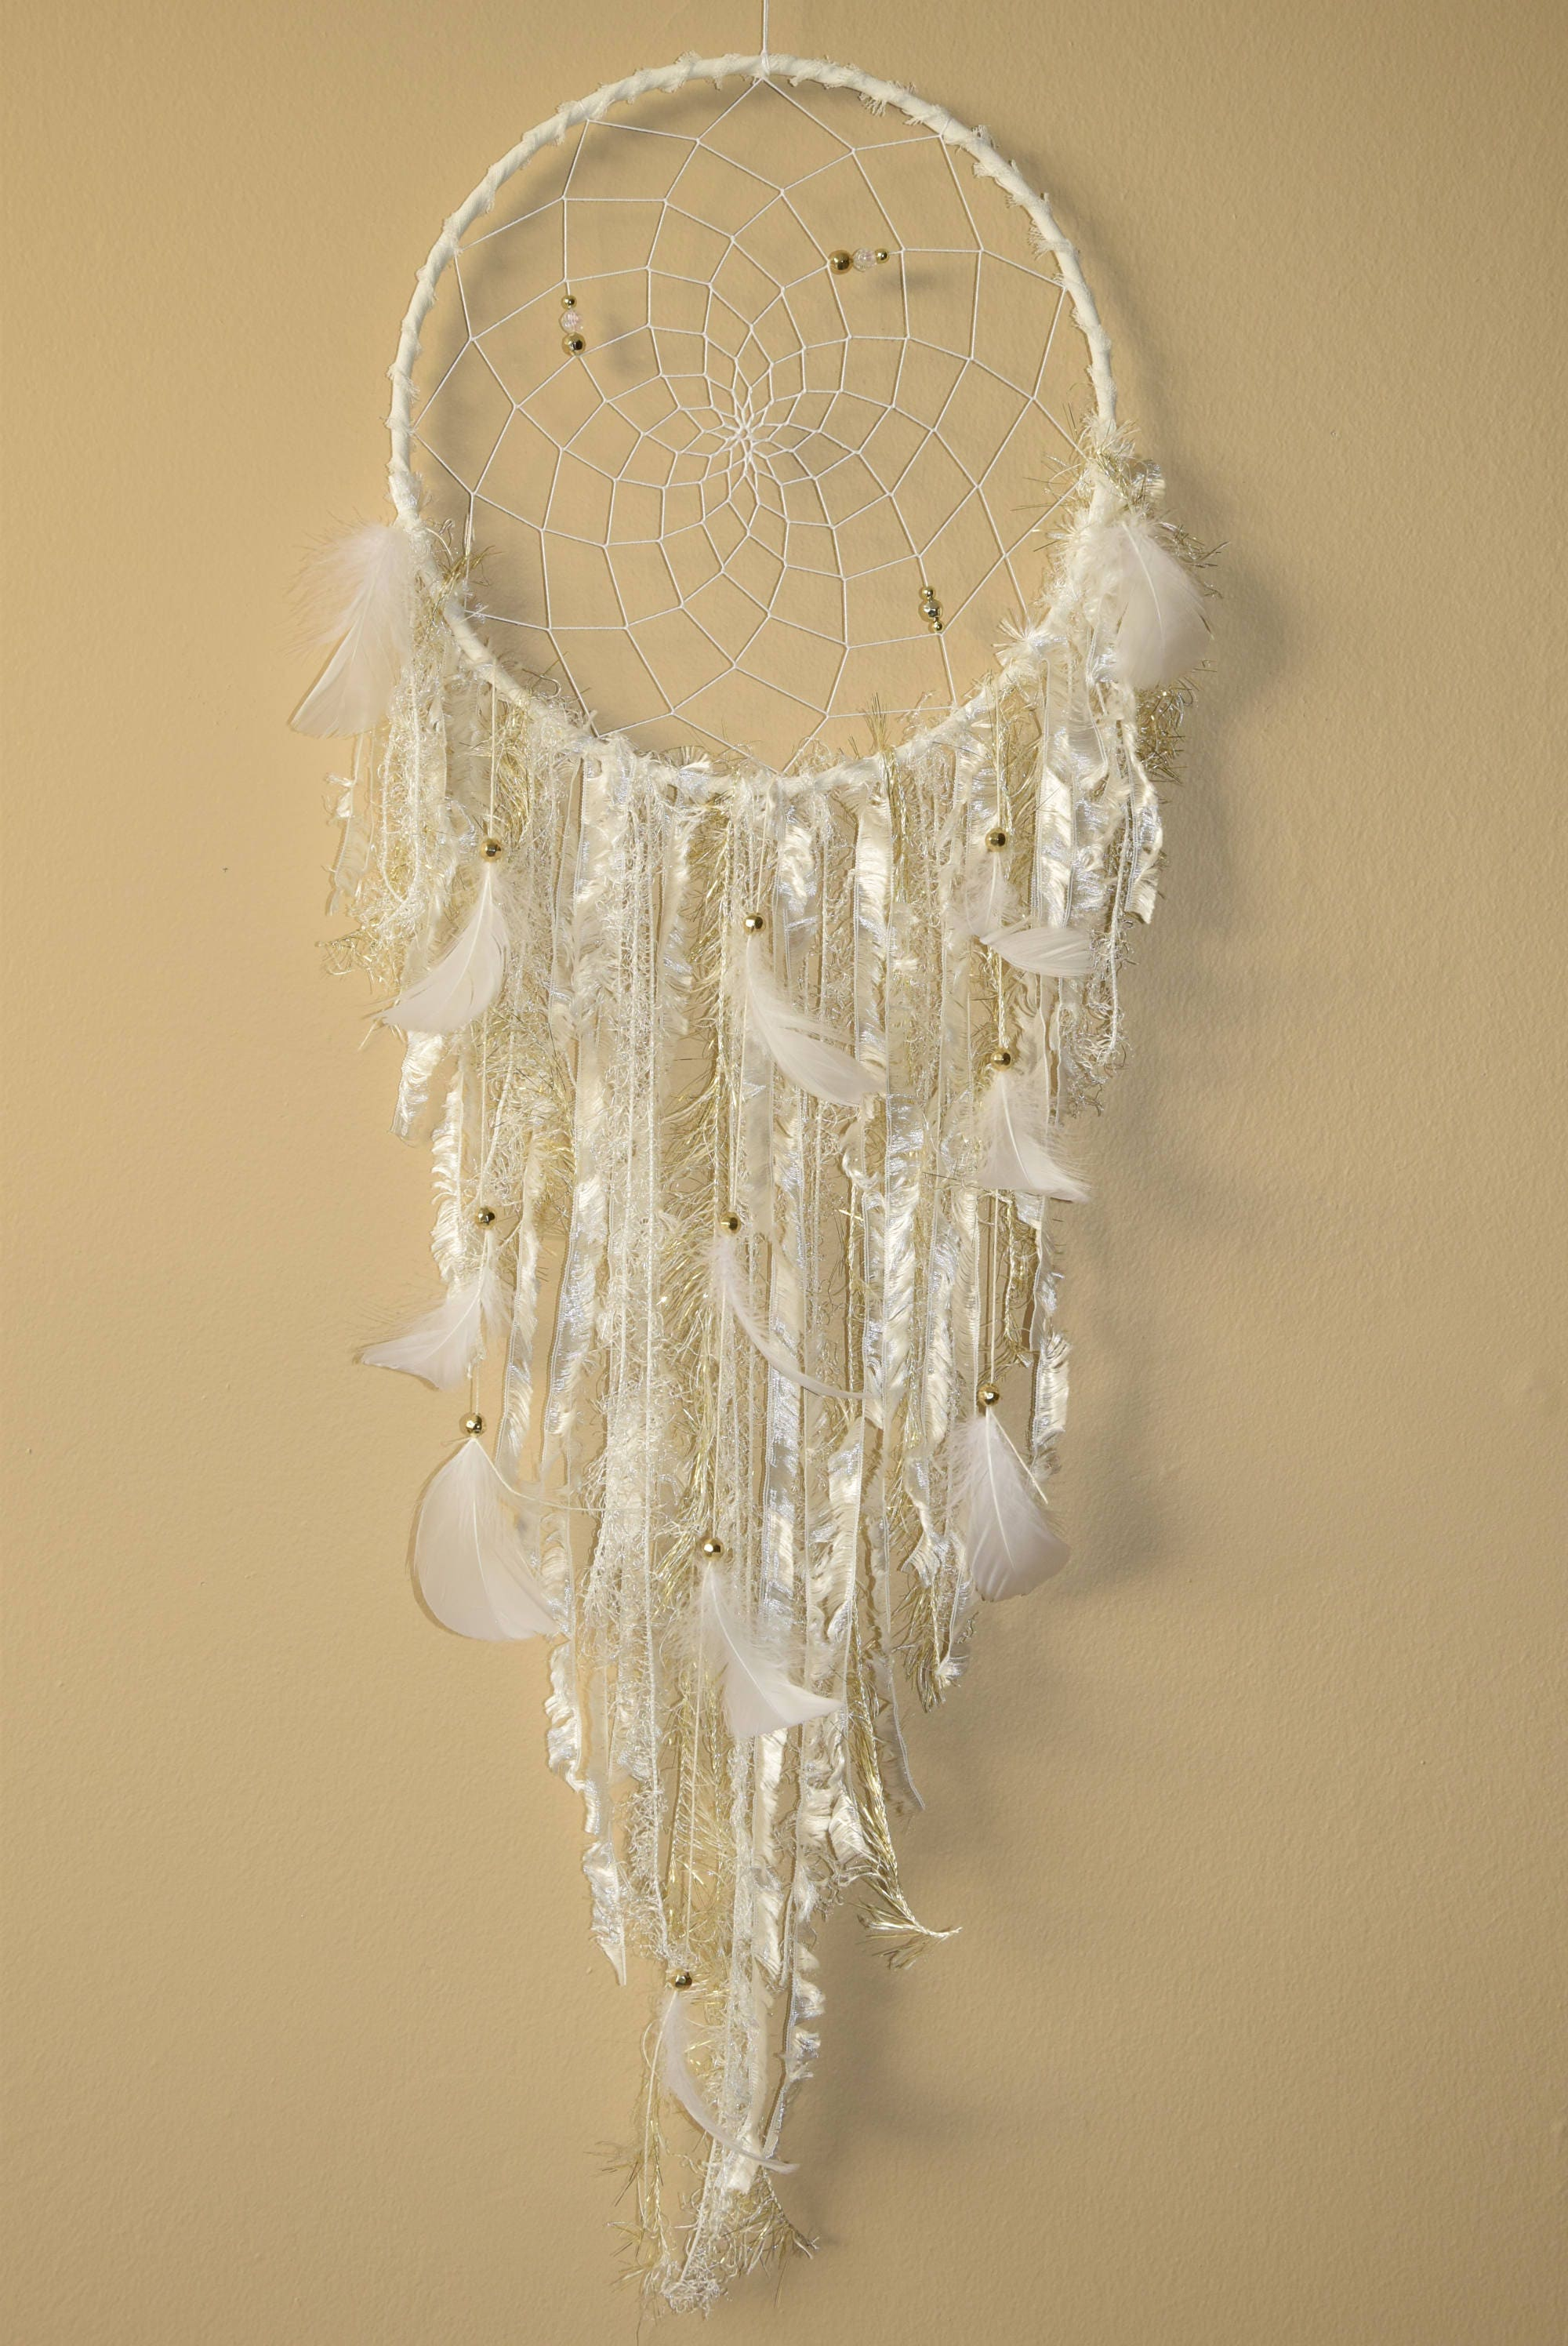 Boho Wall Hanging Dream Catcher Decor, Large White and Gold Dream ...